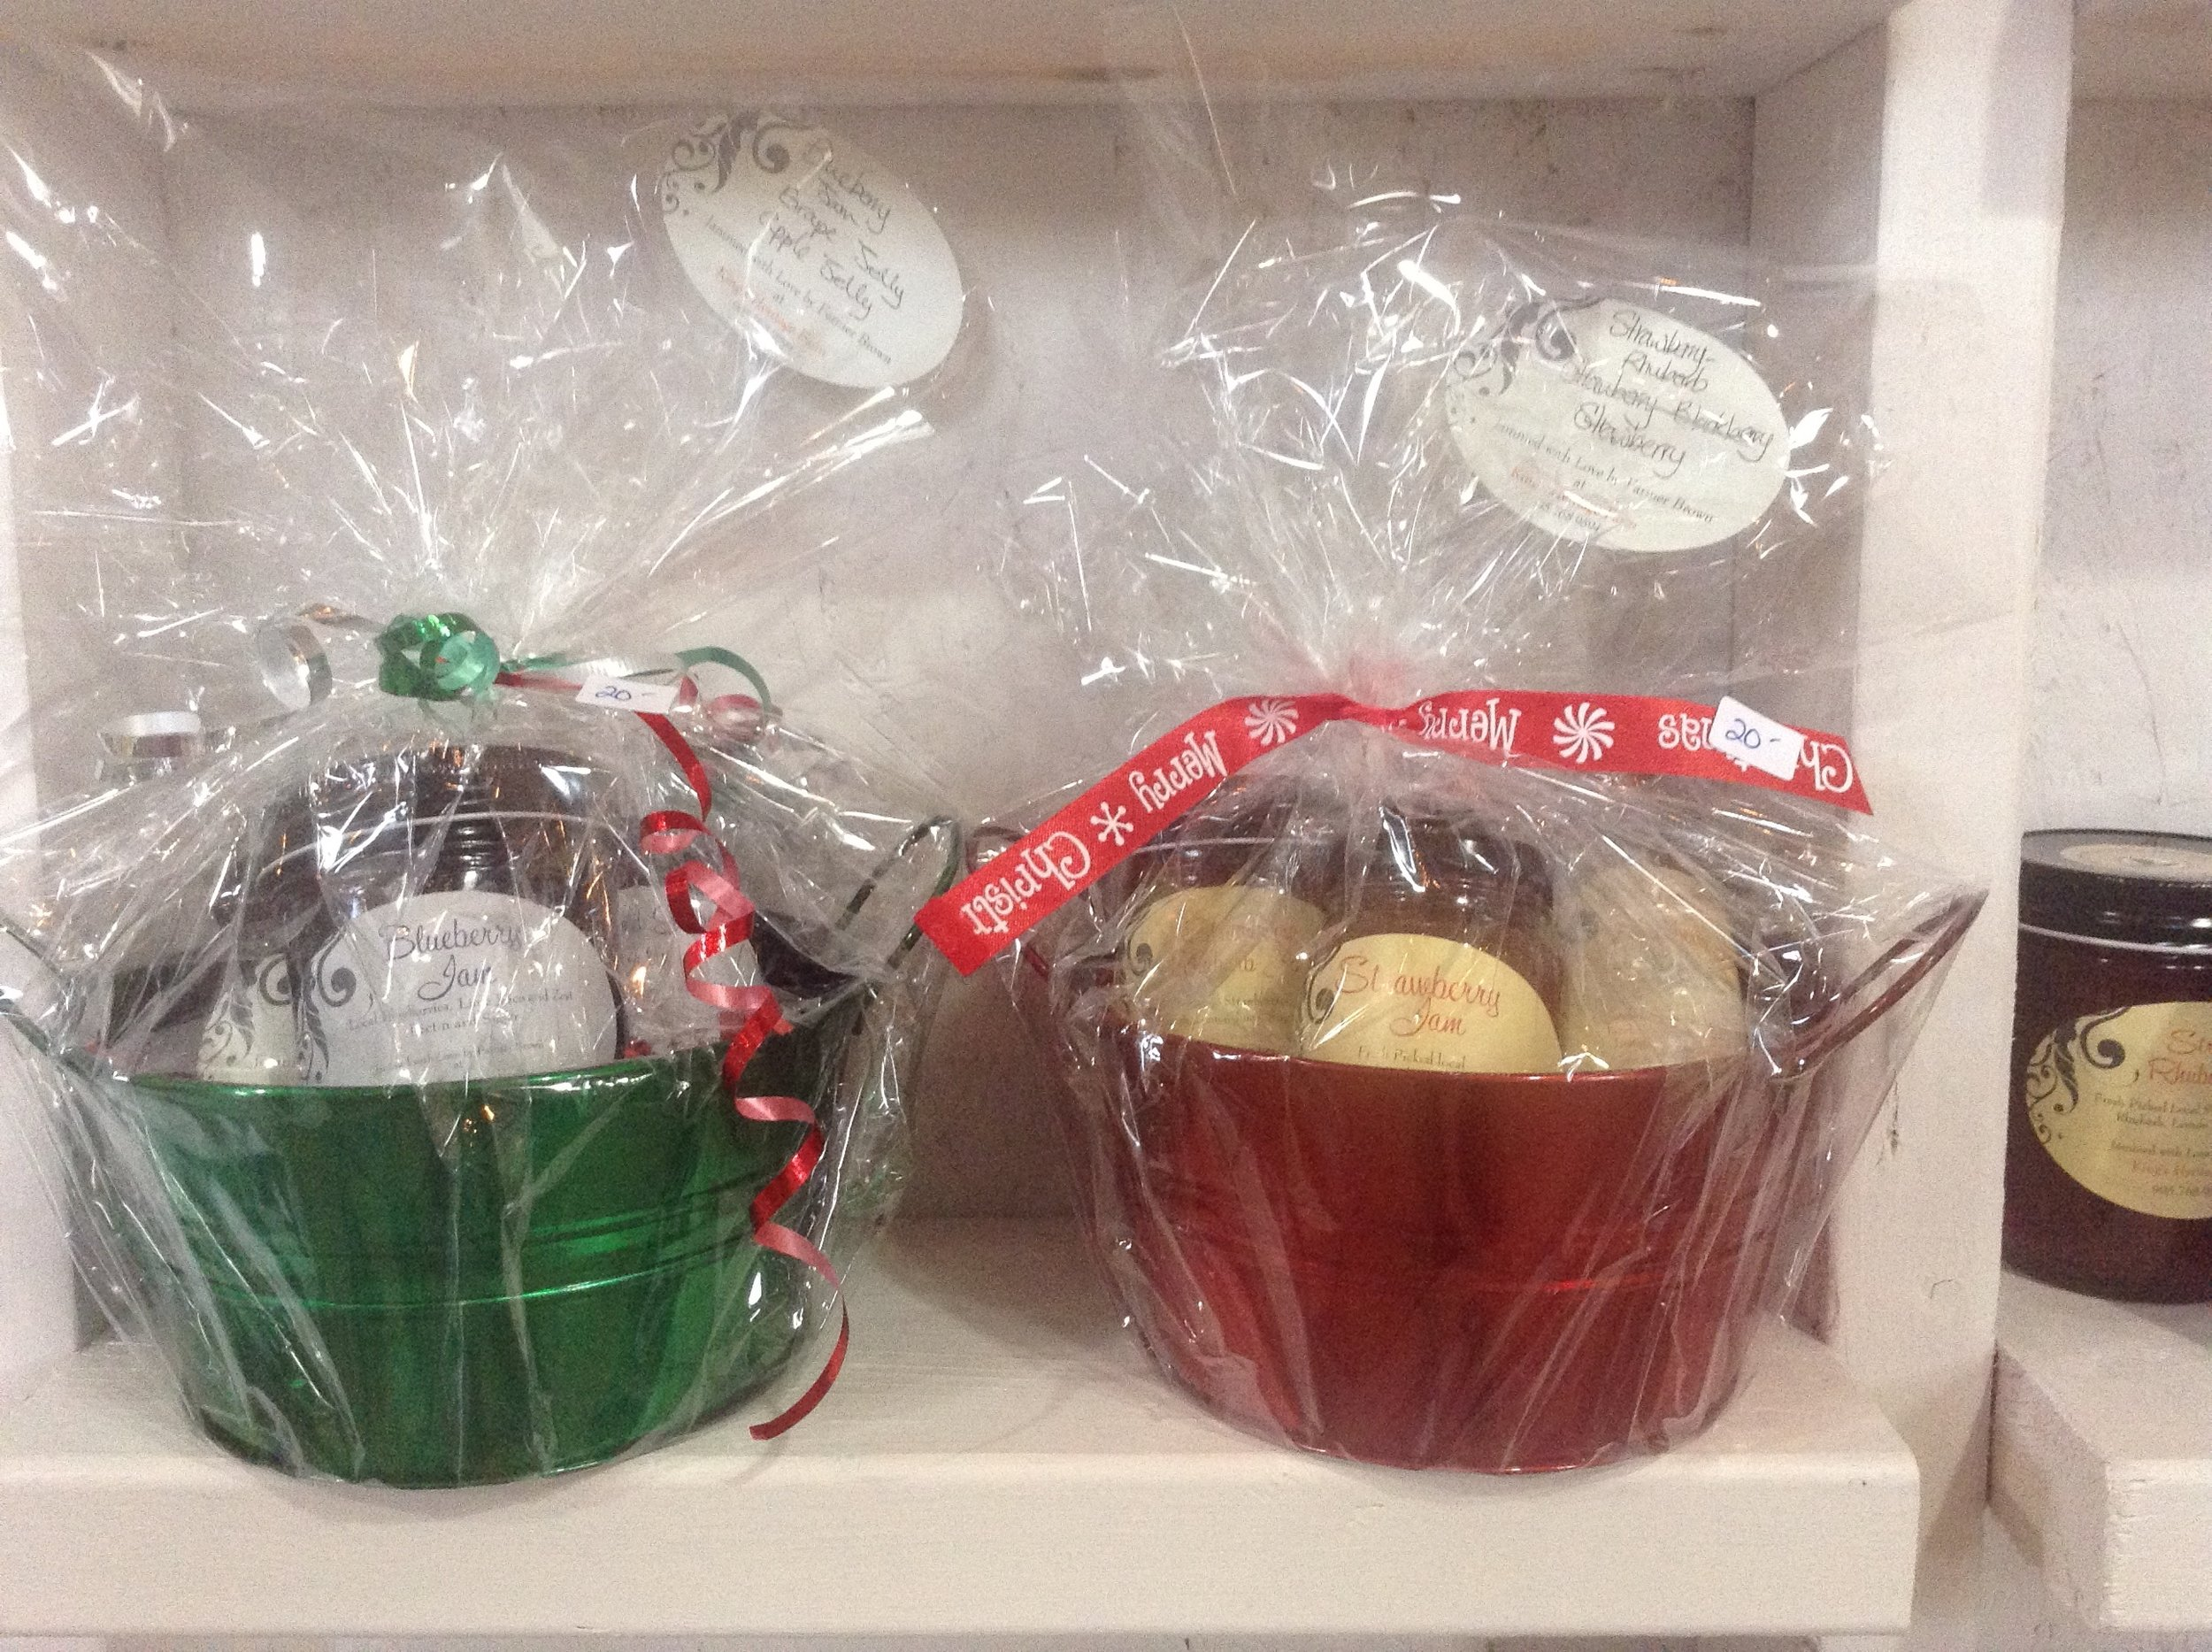 Jam filled gift baskets ready for giving! Happy Holidays🎄